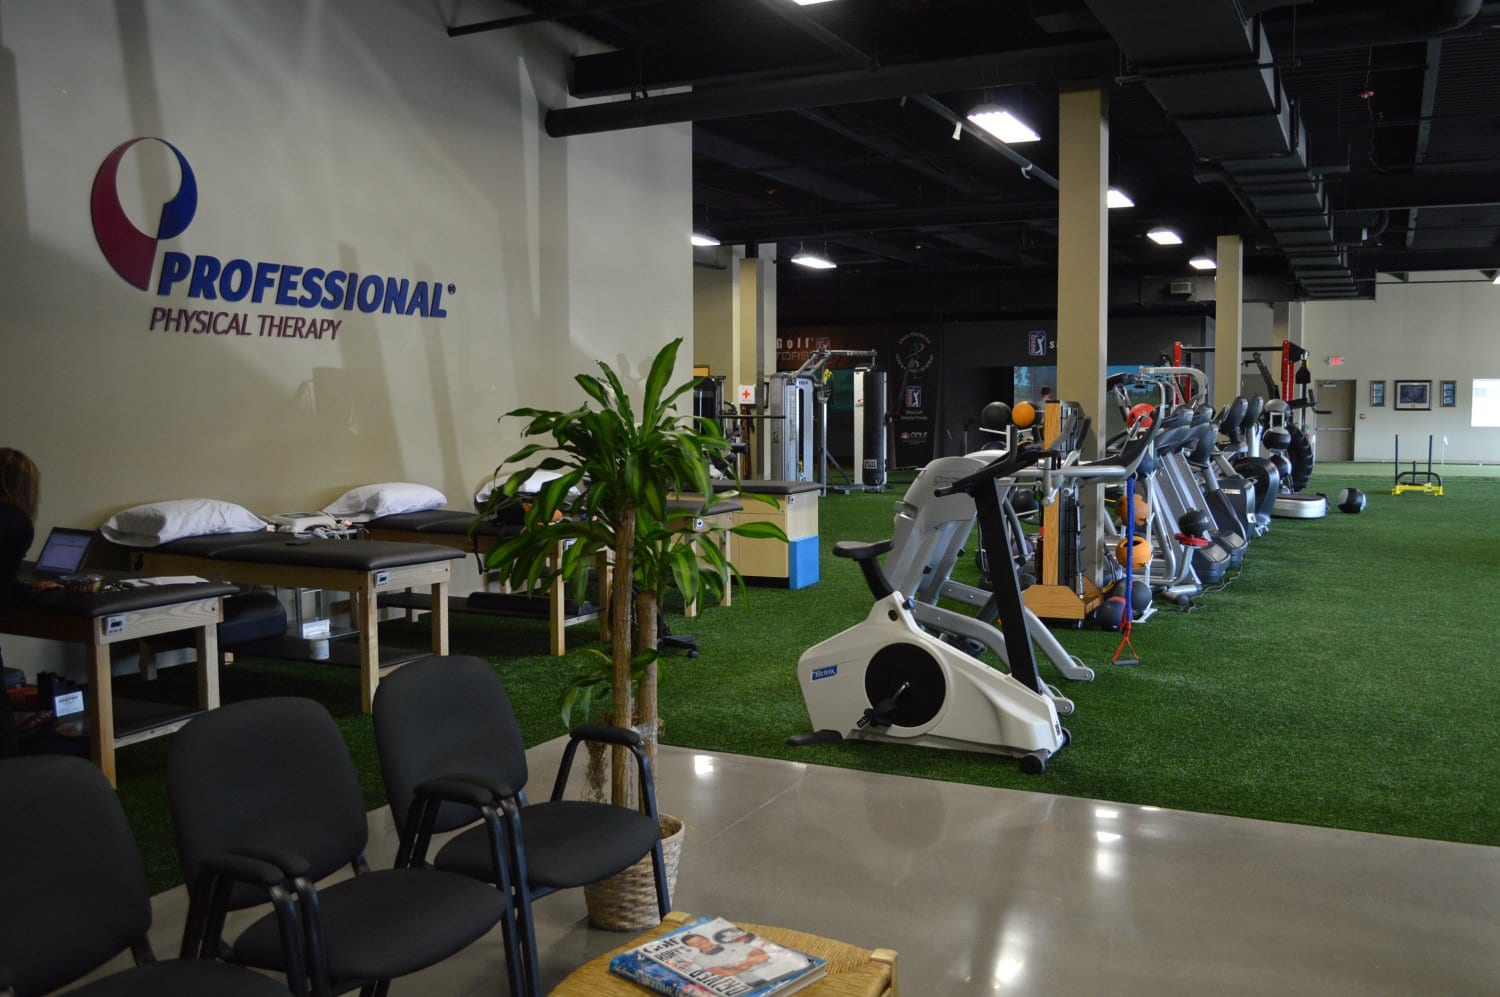 This is an image of the interior of our physical therapy clinic in Syosset, New York.